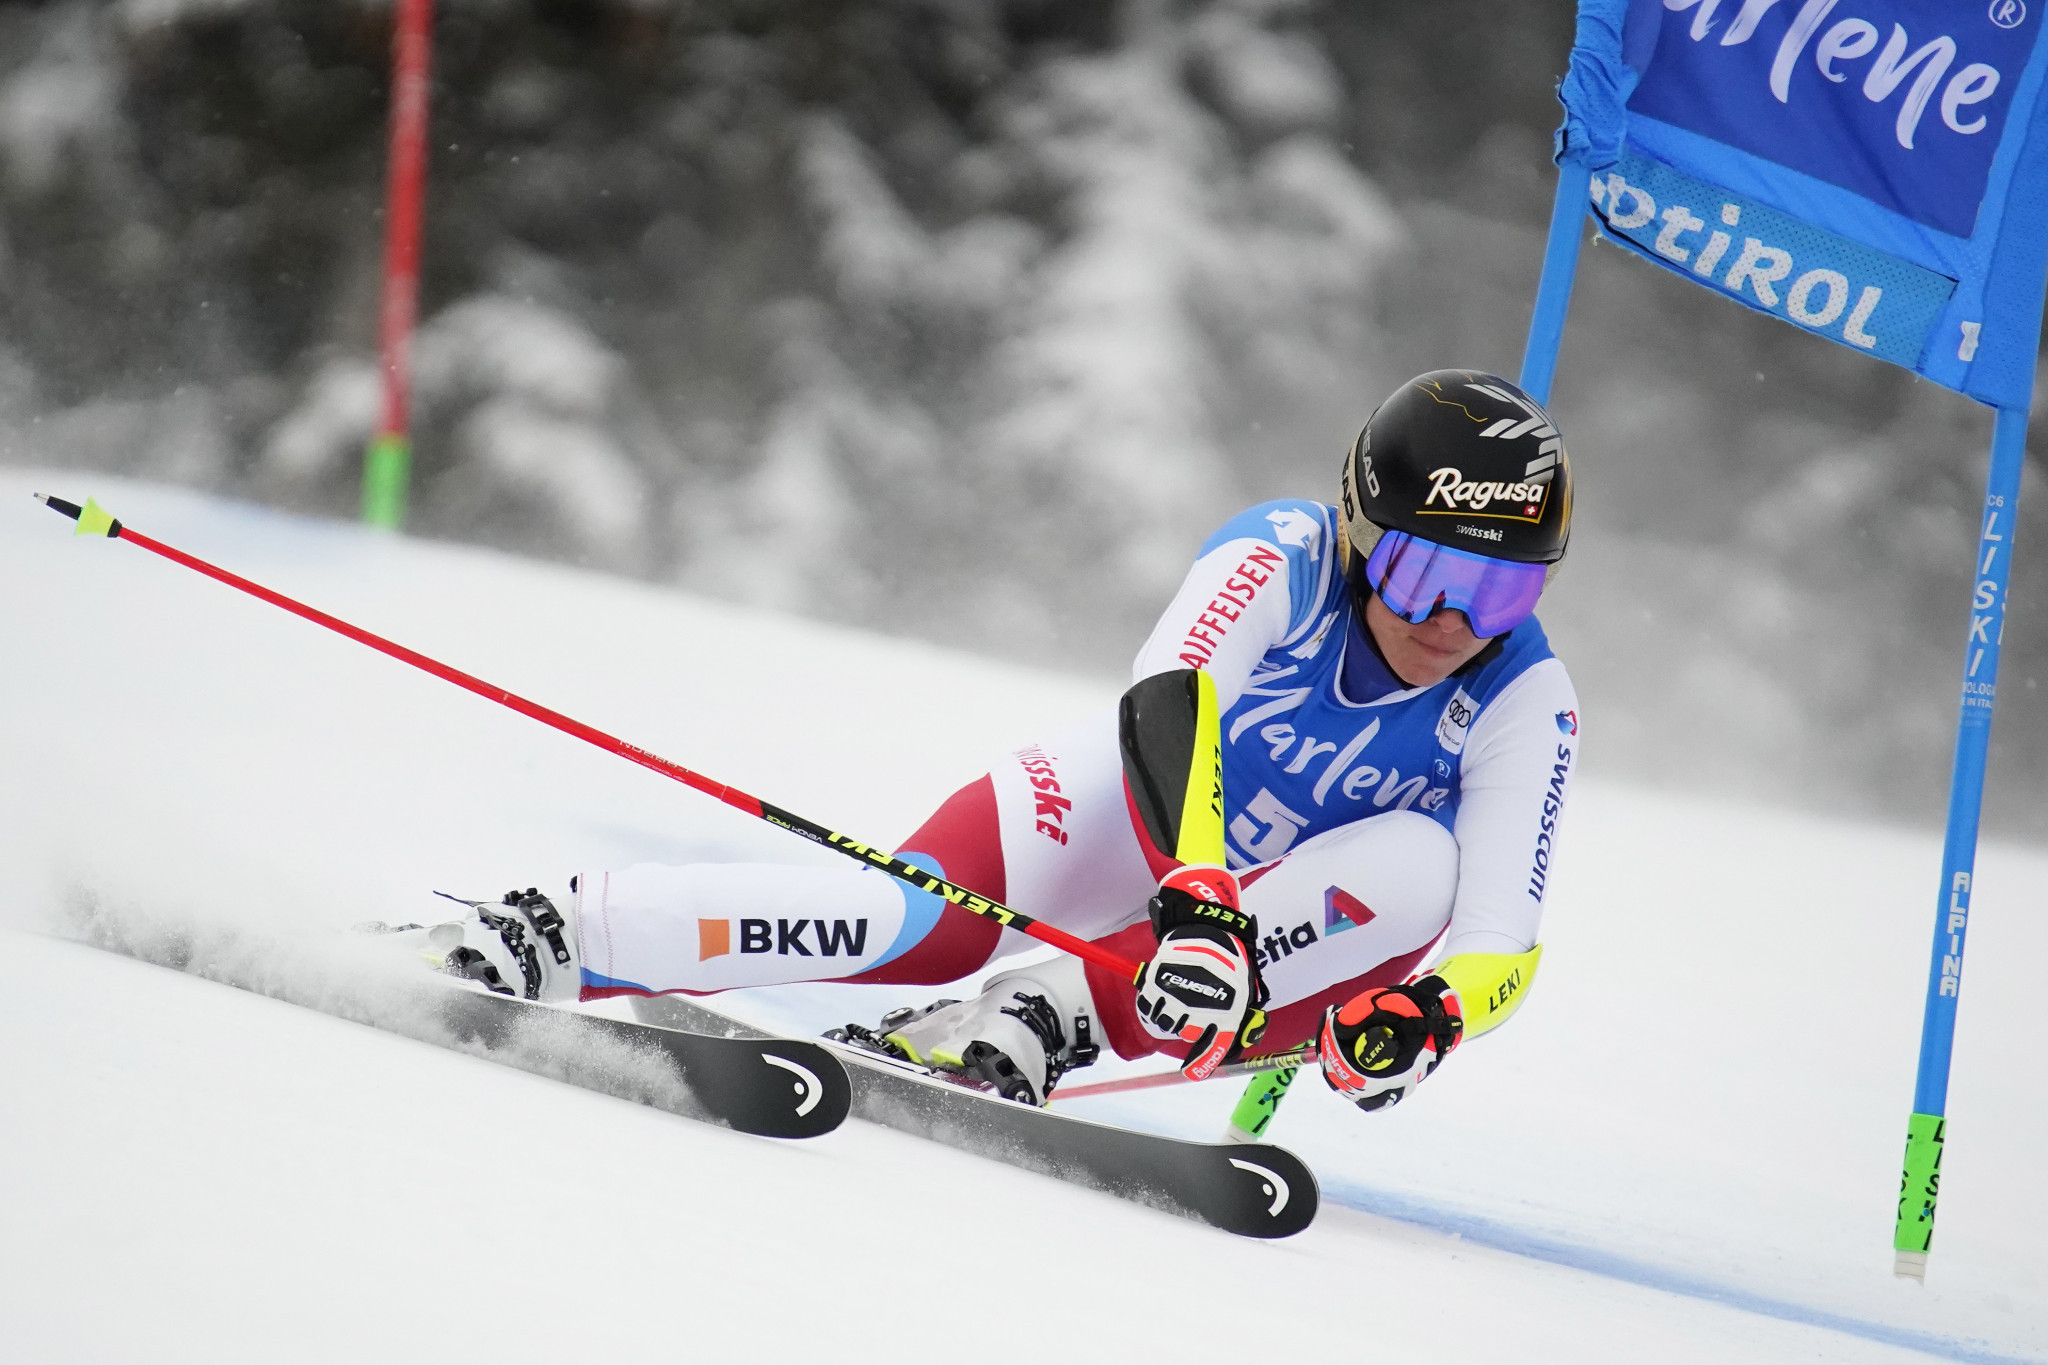 Super-G replaces downhill event at FIS Alpine World Cup in Garmisch-Partenkirchen